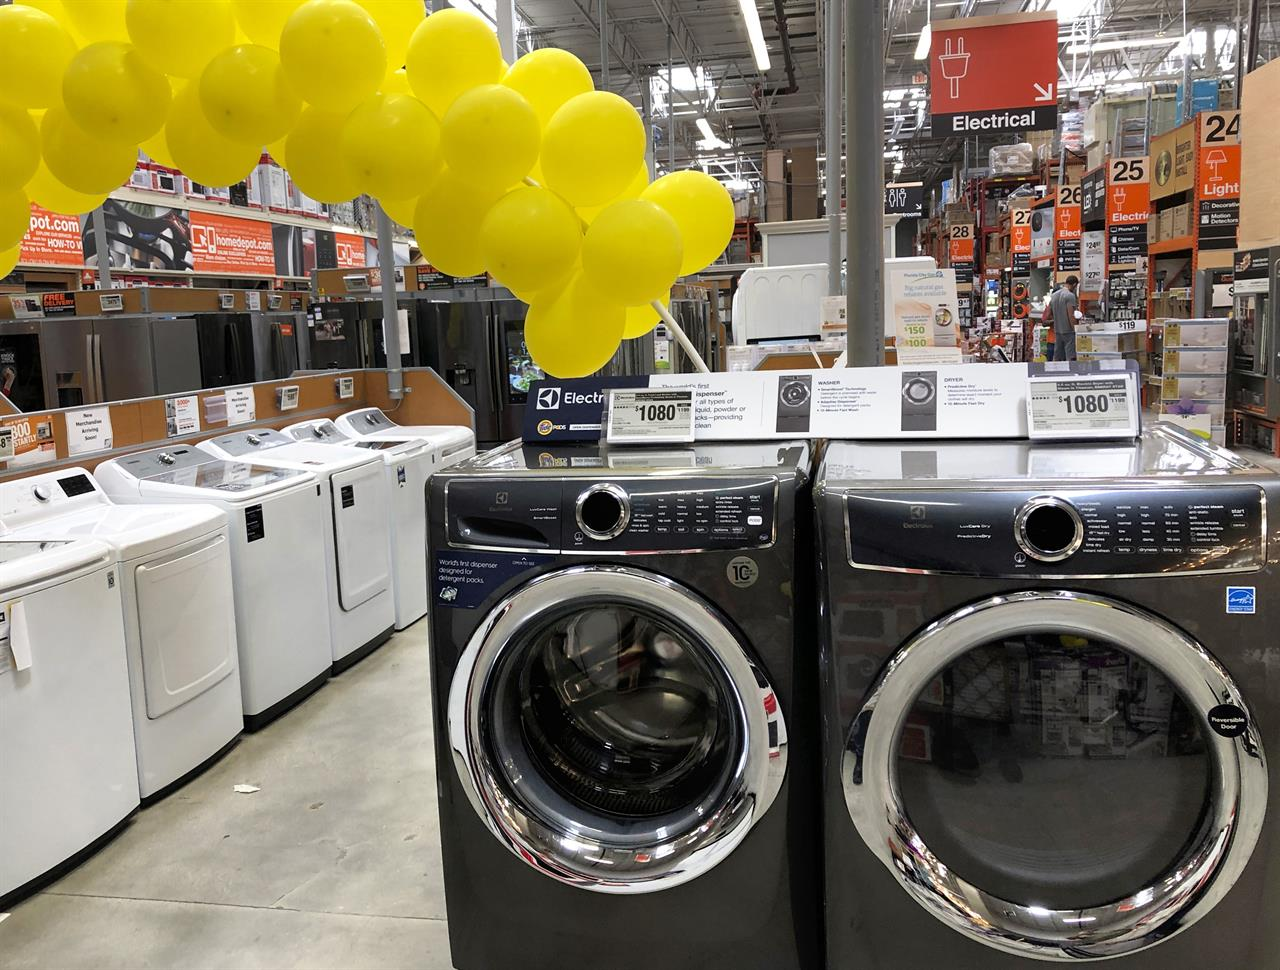 US durable goods orders up solid 2.7% in March